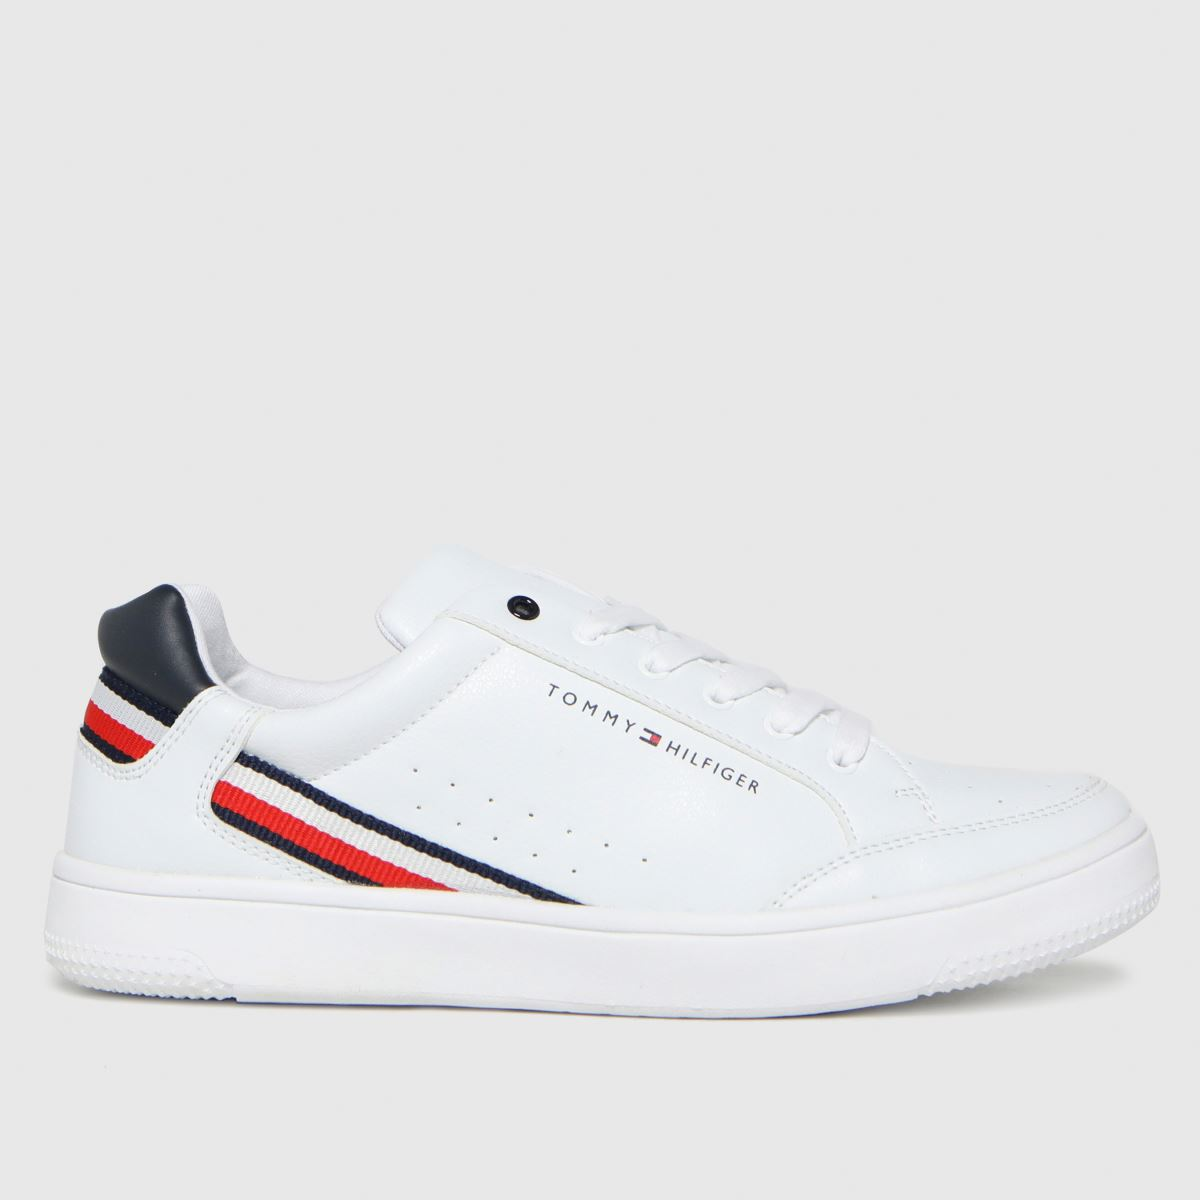 Tommy Hilfiger White & Navy Low Cut Lace-up Sneaker Trainers You